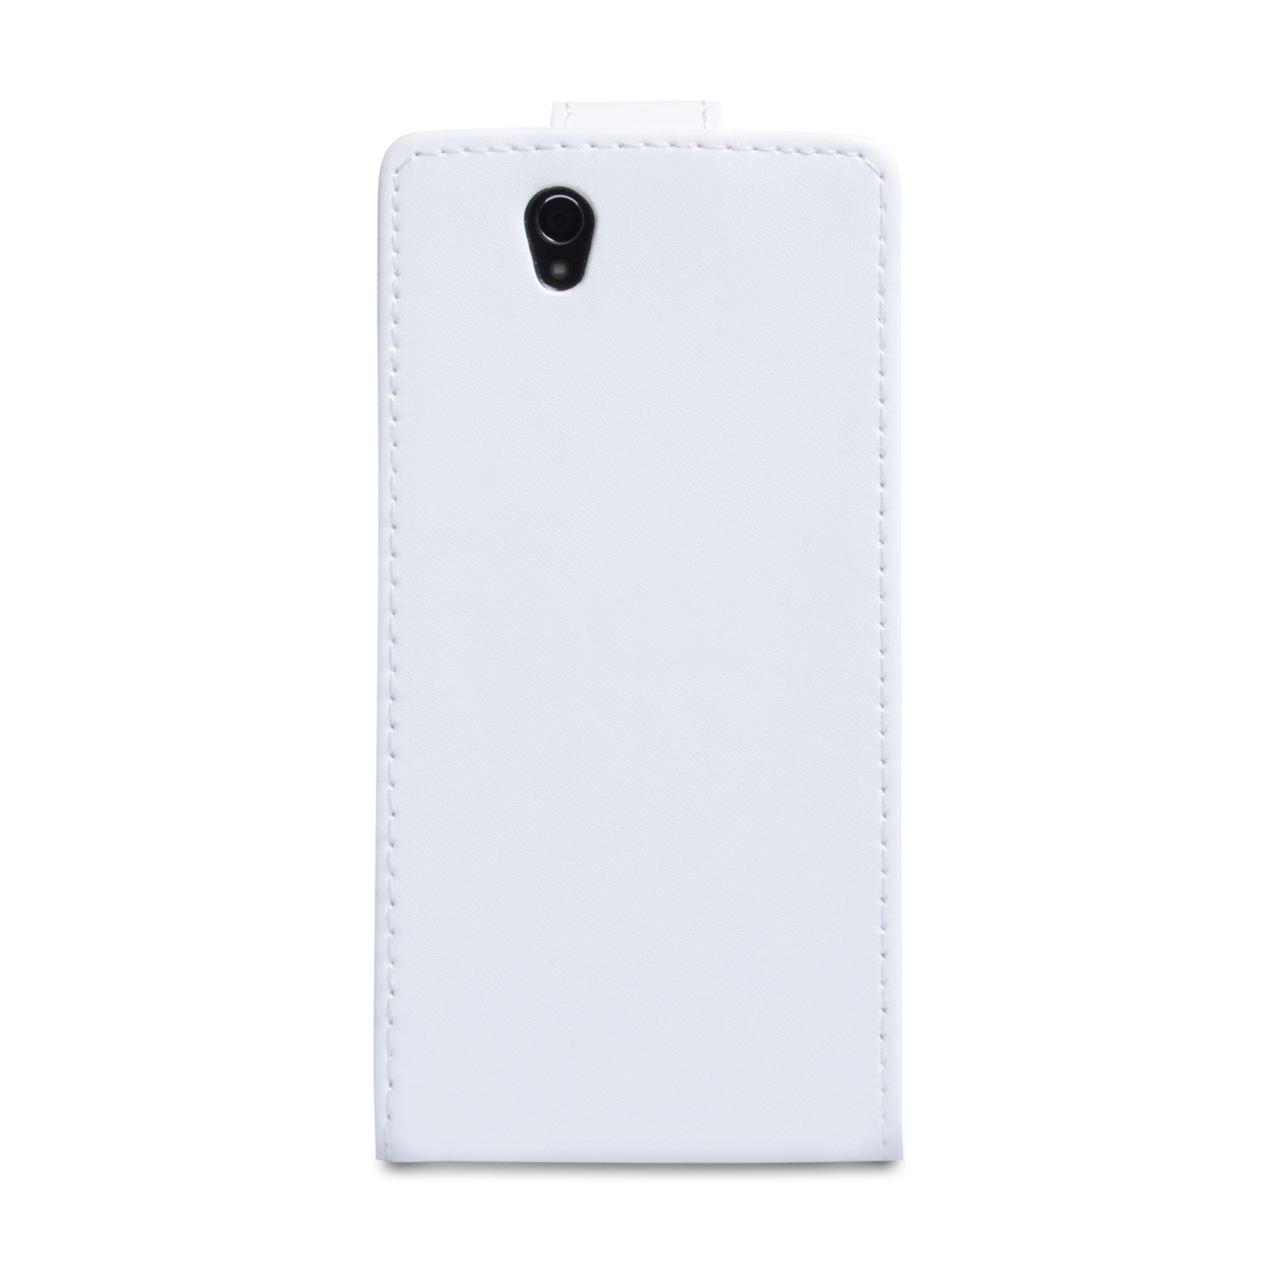 YouSave Accessories Sony Xperia Z Leather Effect Flip Case - White